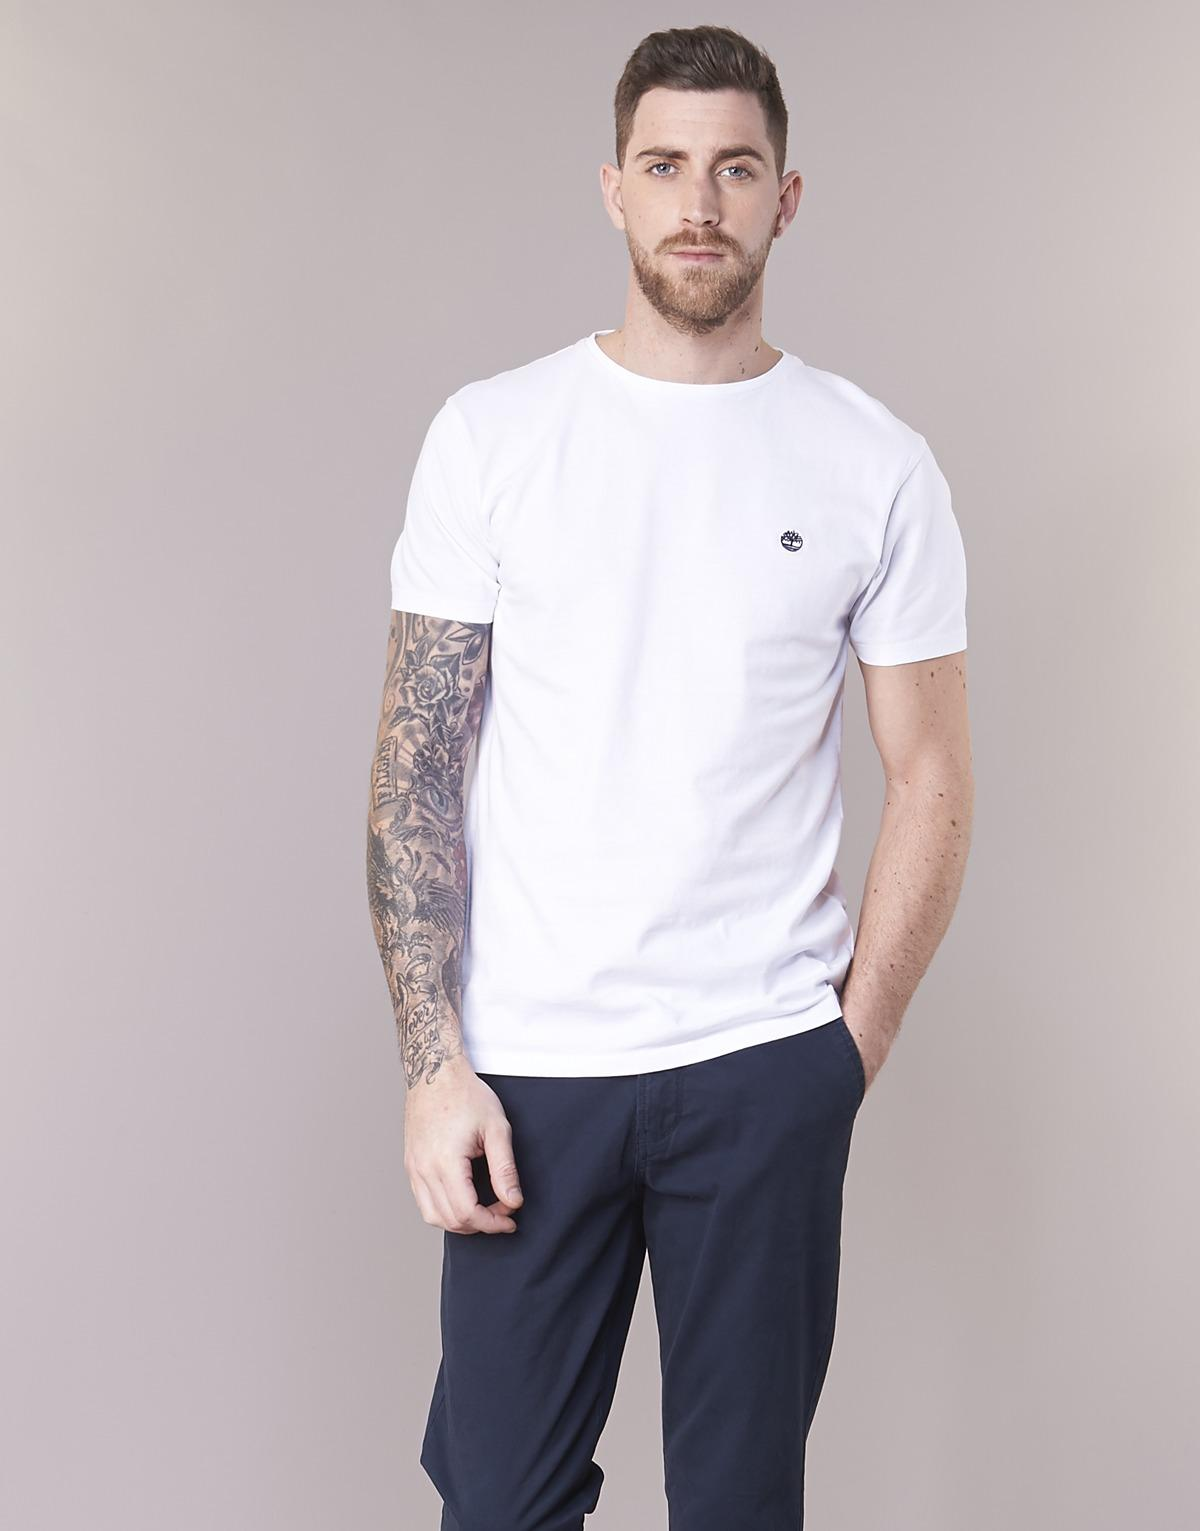 7f98c0db Timberland Ss Dunstan River Crew Tee T Shirt in White for Men - Save 14% -  Lyst